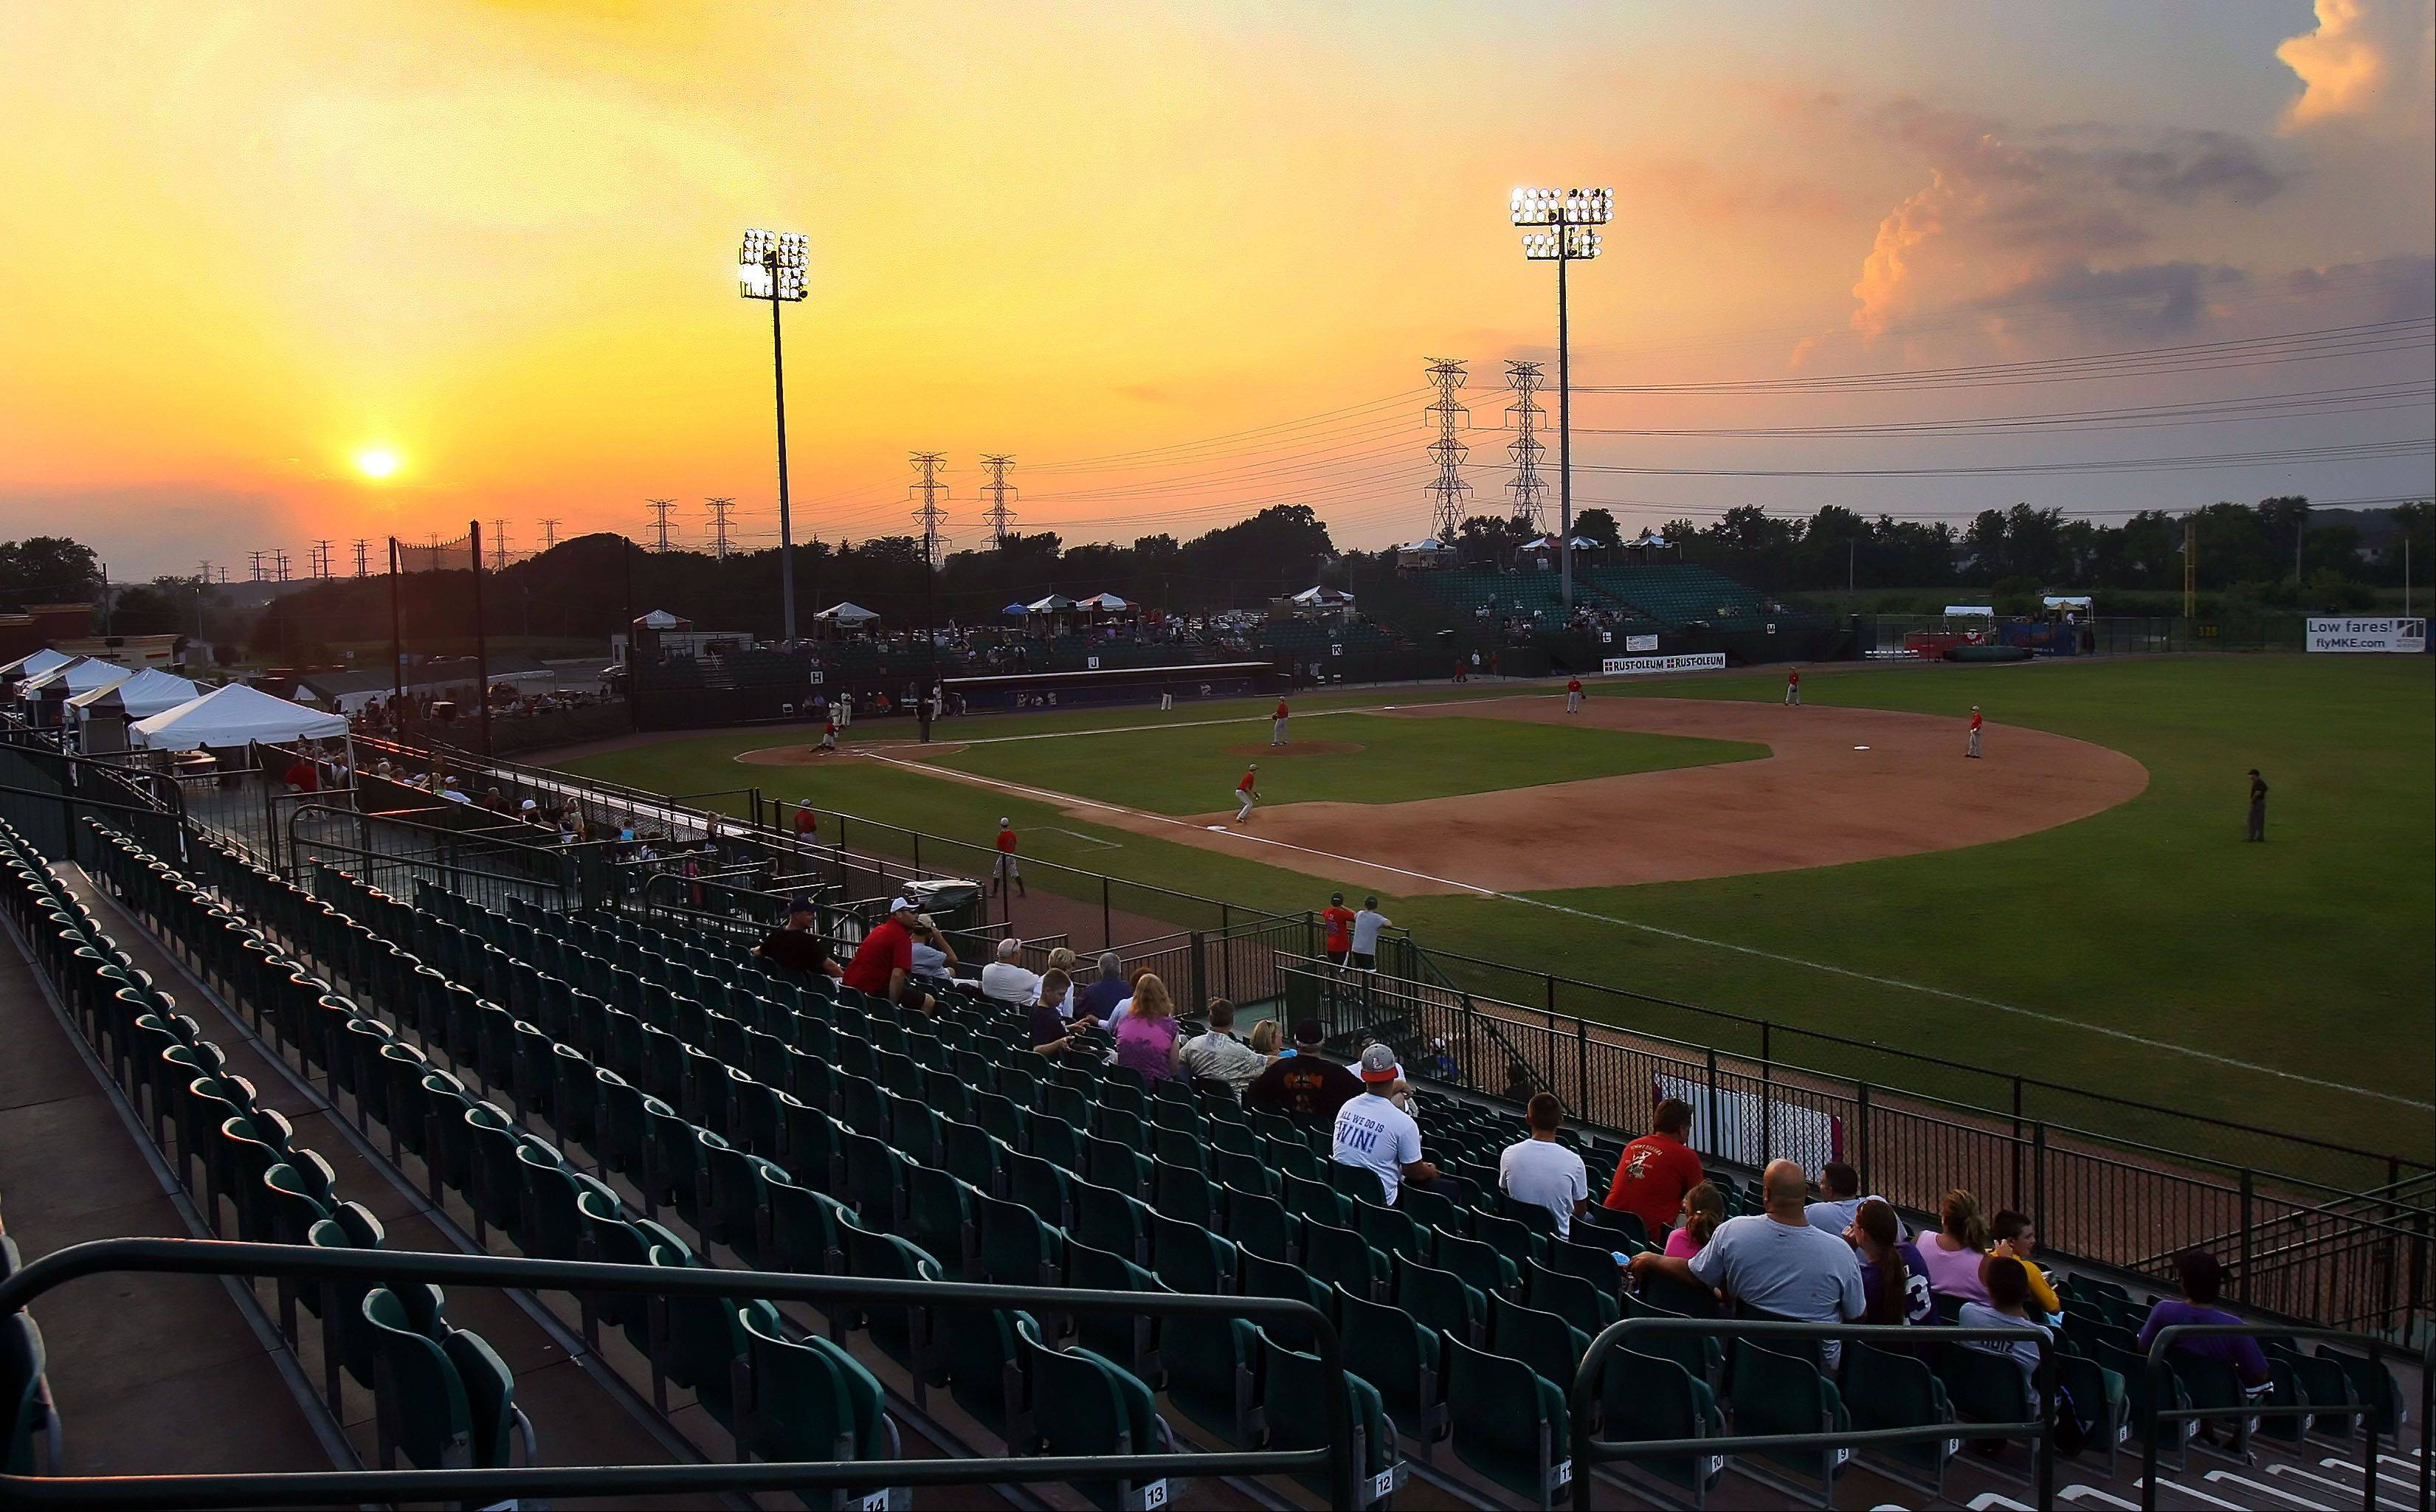 Fans have been scarce for the Lake County Fielders' final games against a collection of semipro players calling themselves the Kenosha County Fielders.